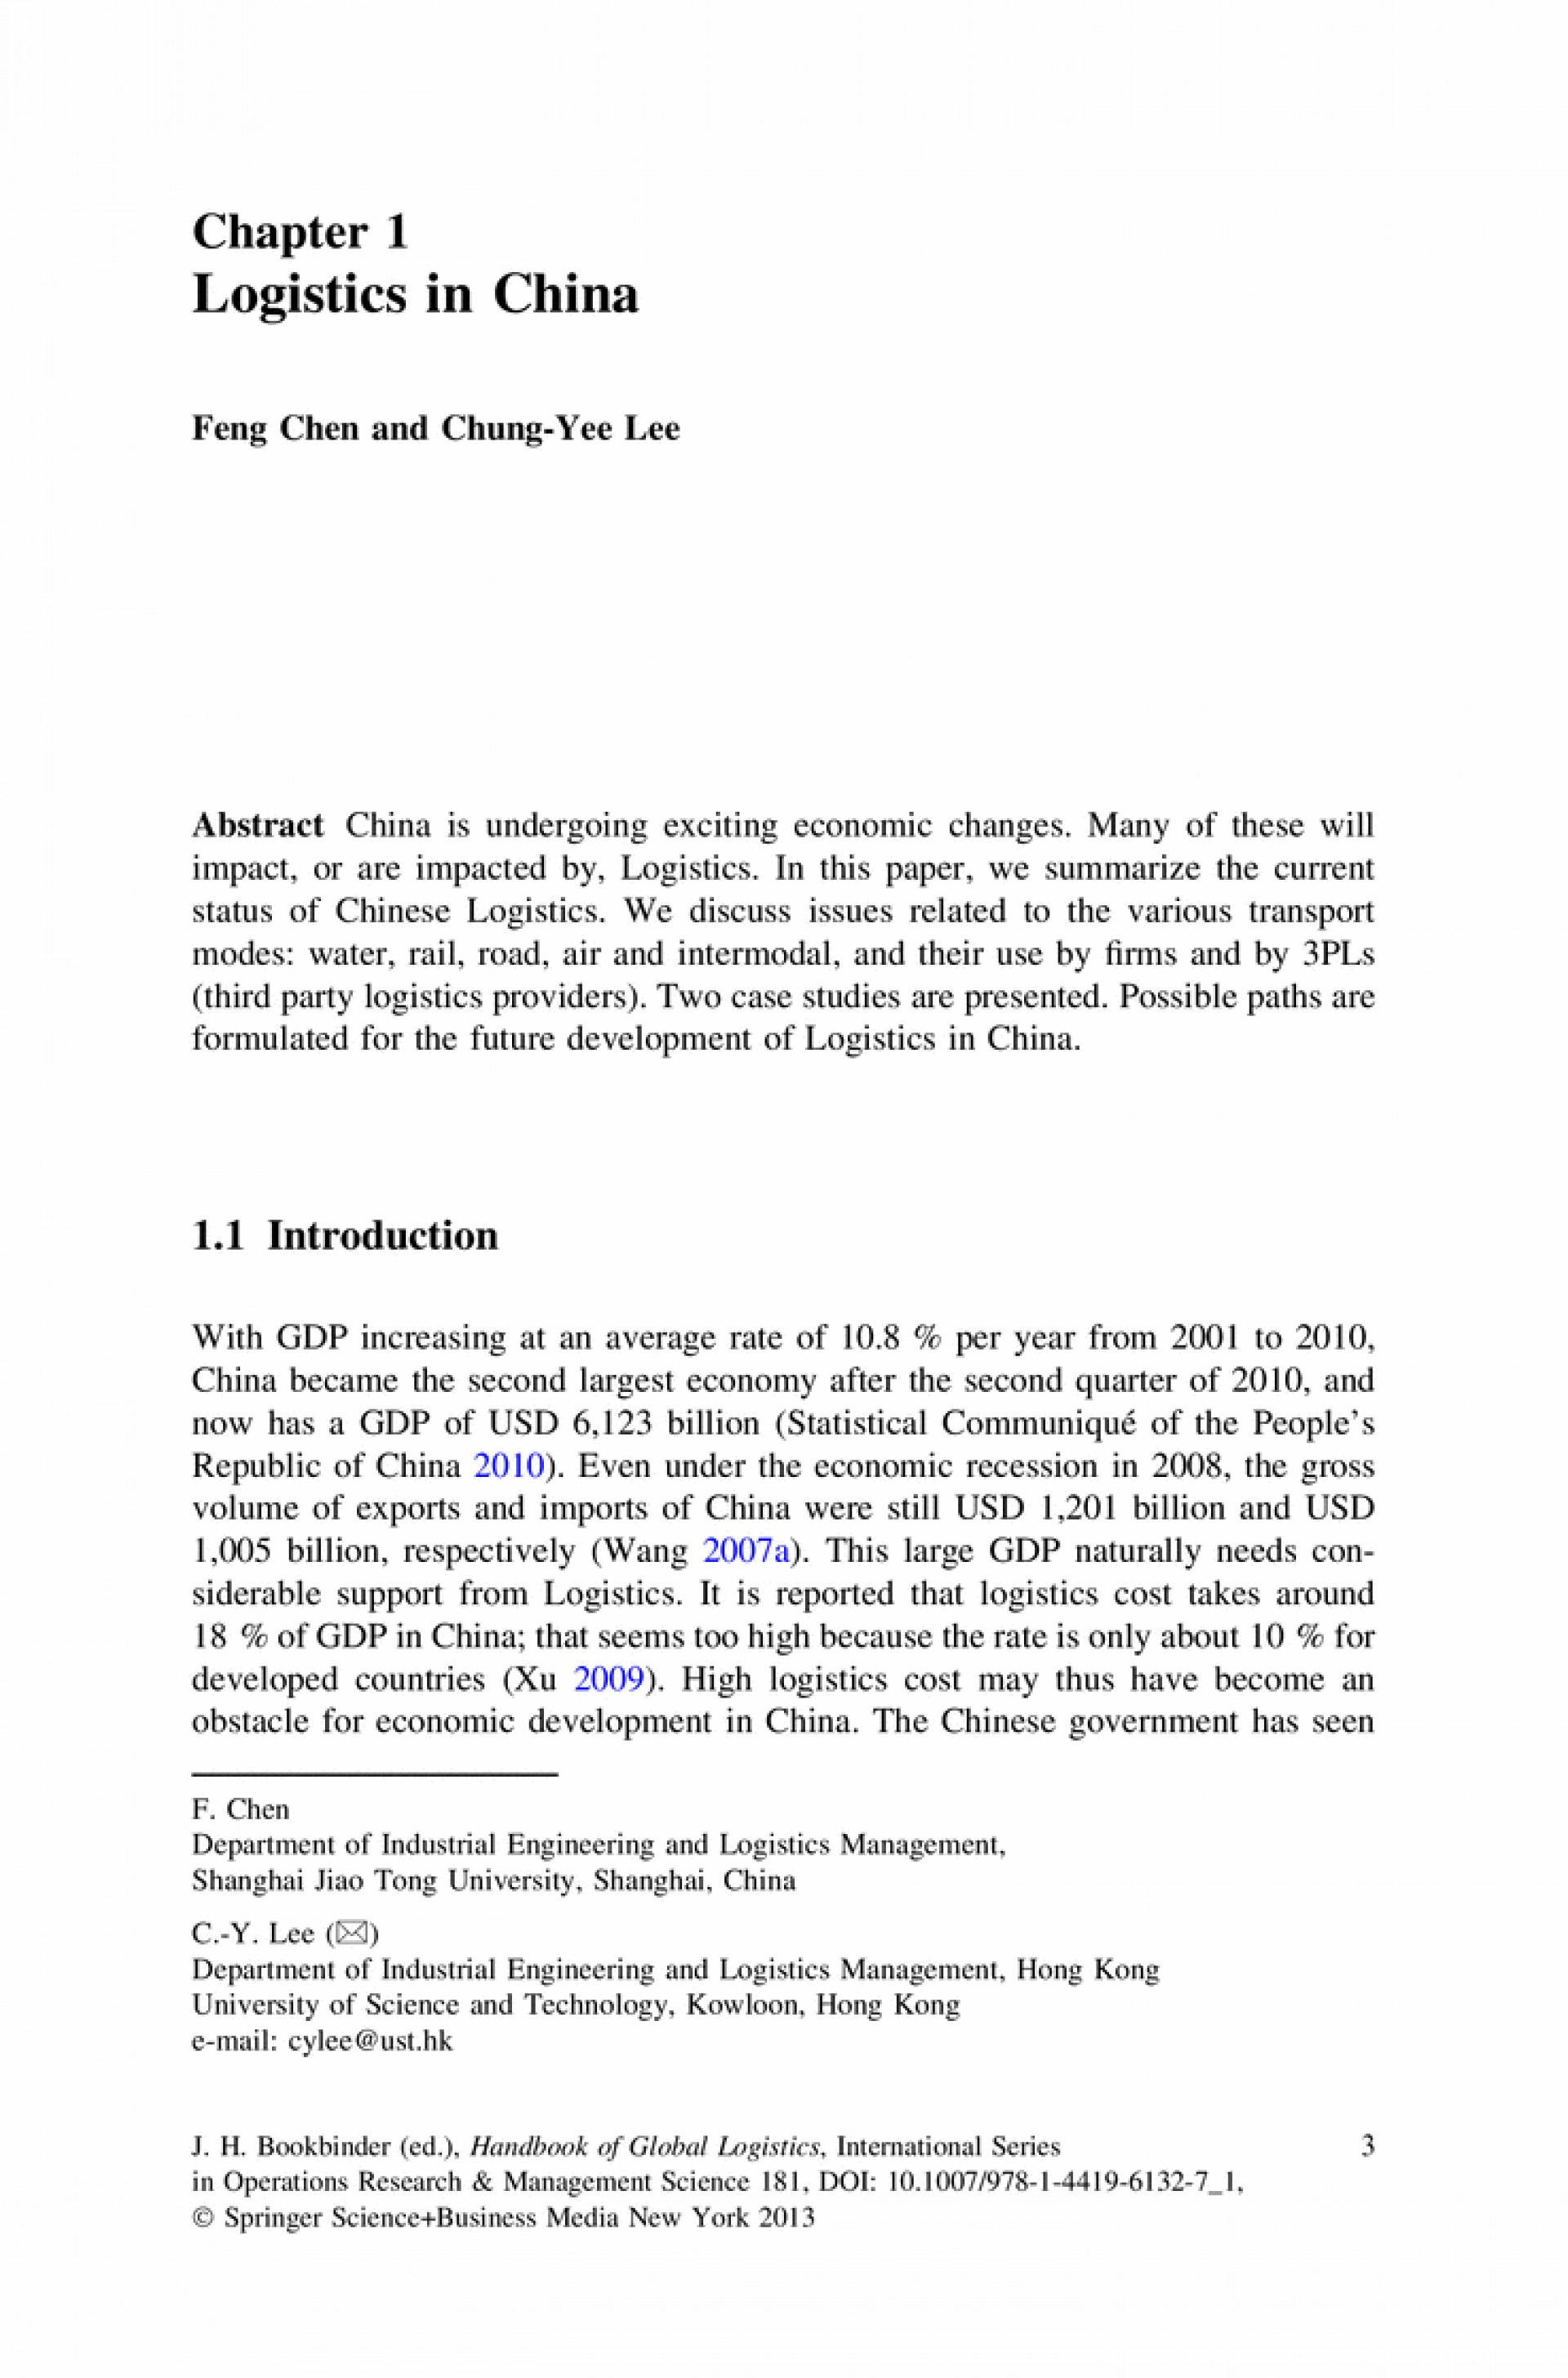 008 Essay Example How To Write History Introduction Letter For Transportation Business Highest Quality Transport Plan Sample Of Good Executive Summar Outline Great Pdf Grade Learners Stupendous A Paragraph Extended 1920